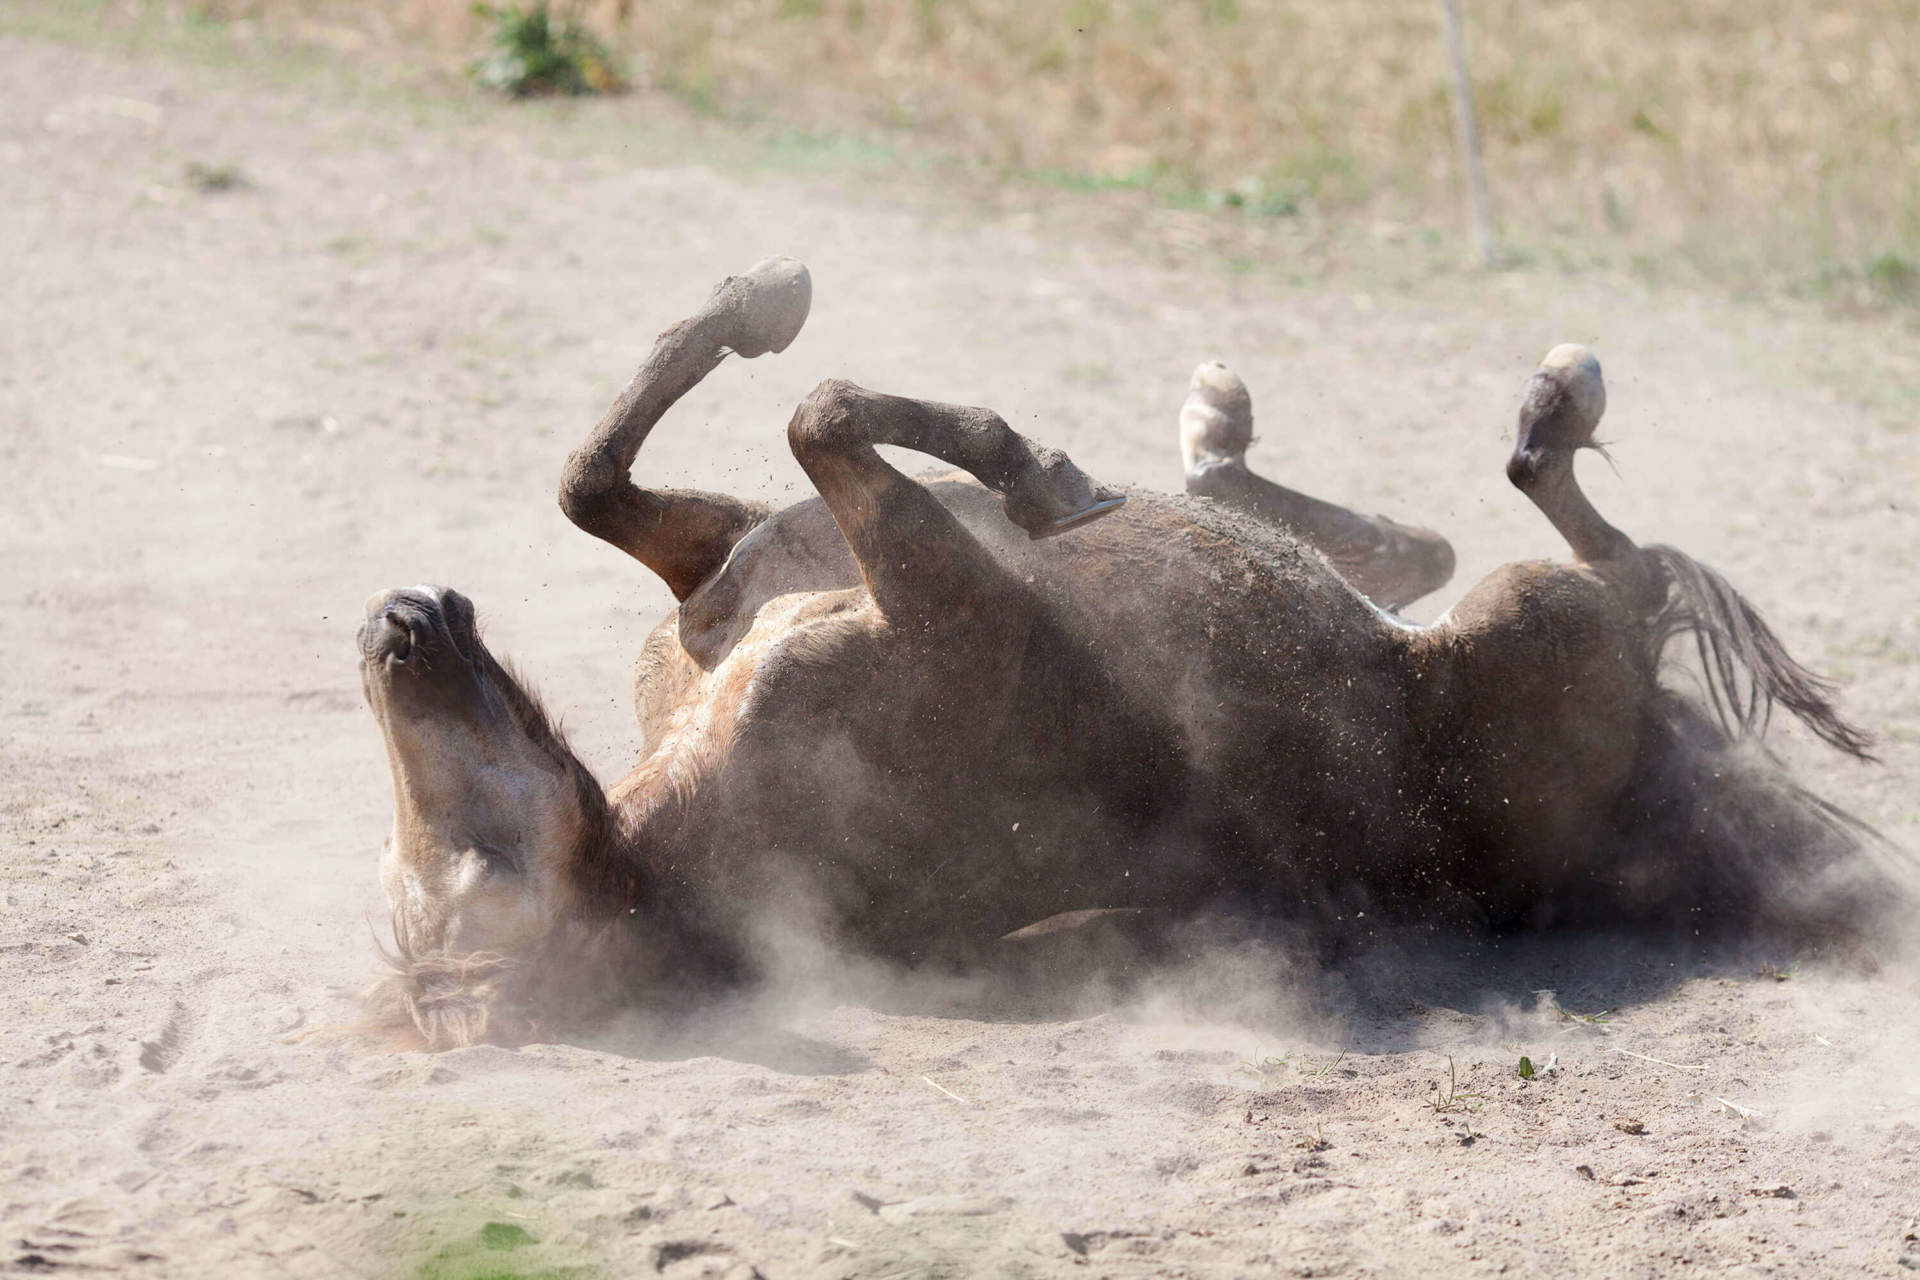 Horse Rolling in Dirt